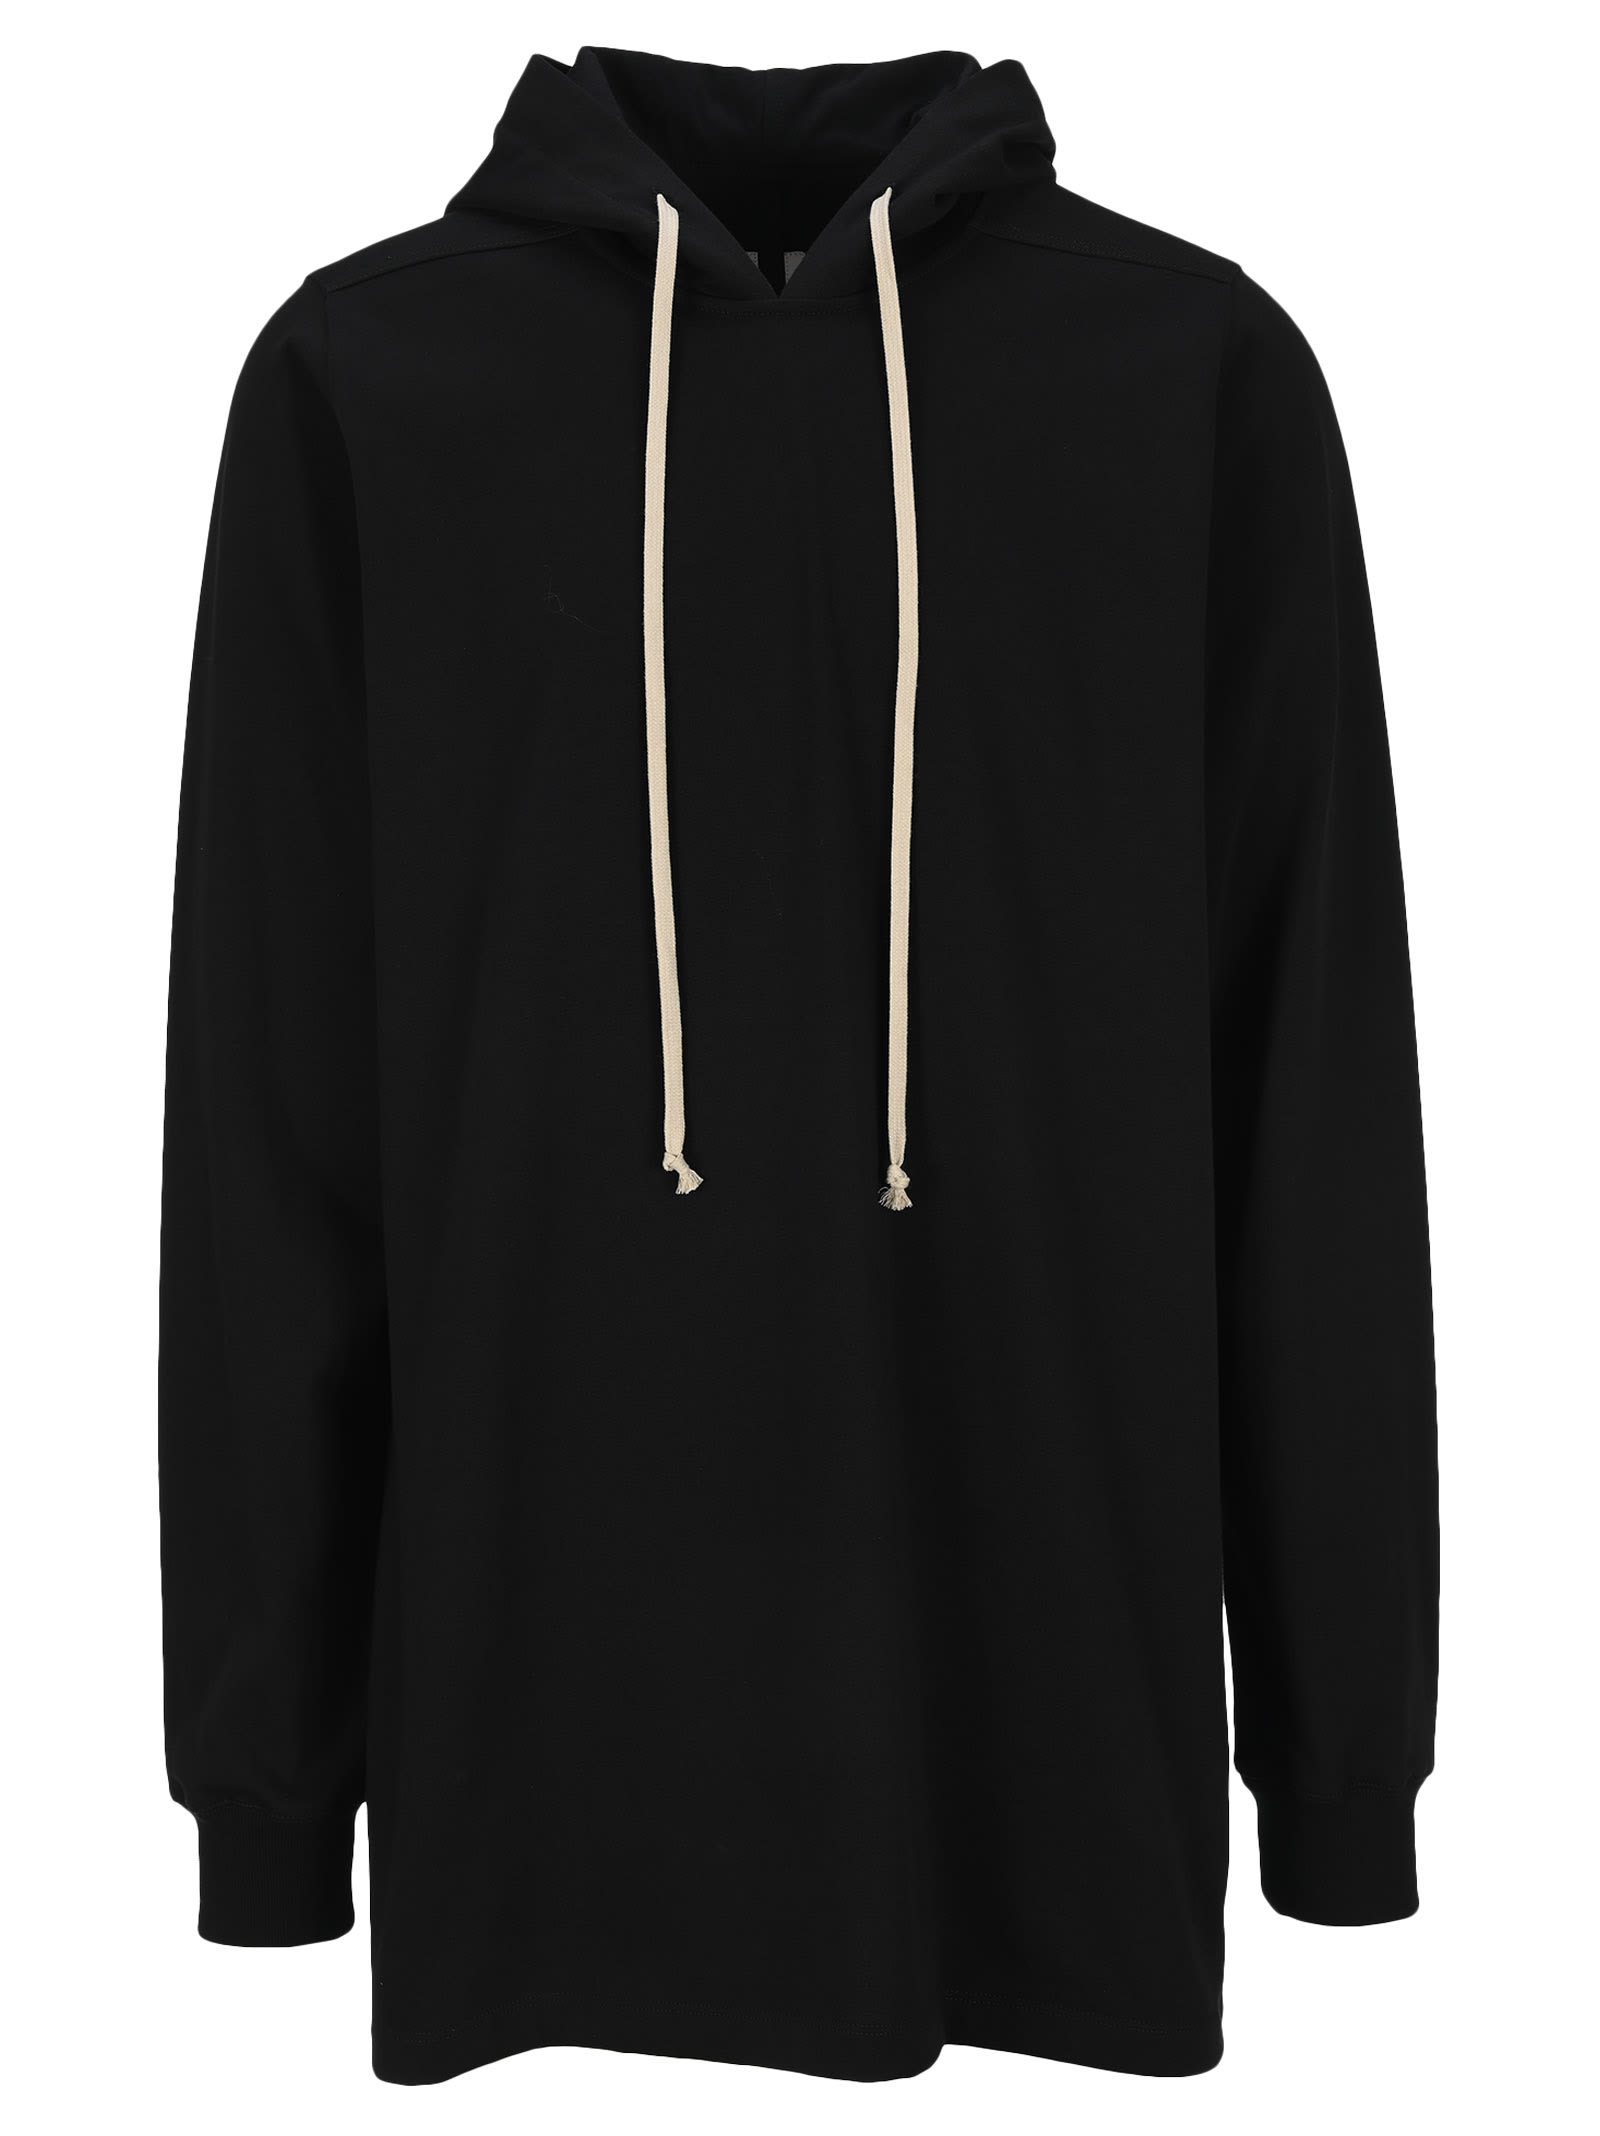 Black Cotton Oversized Hoodie By Rick Owens. Featuring: - Drawstring Dood; - Long Sleeves; - Ribbed Cuffs; - Ovesized Fit; - Long Length; - Curved Hem. Composition: 100% COTTON